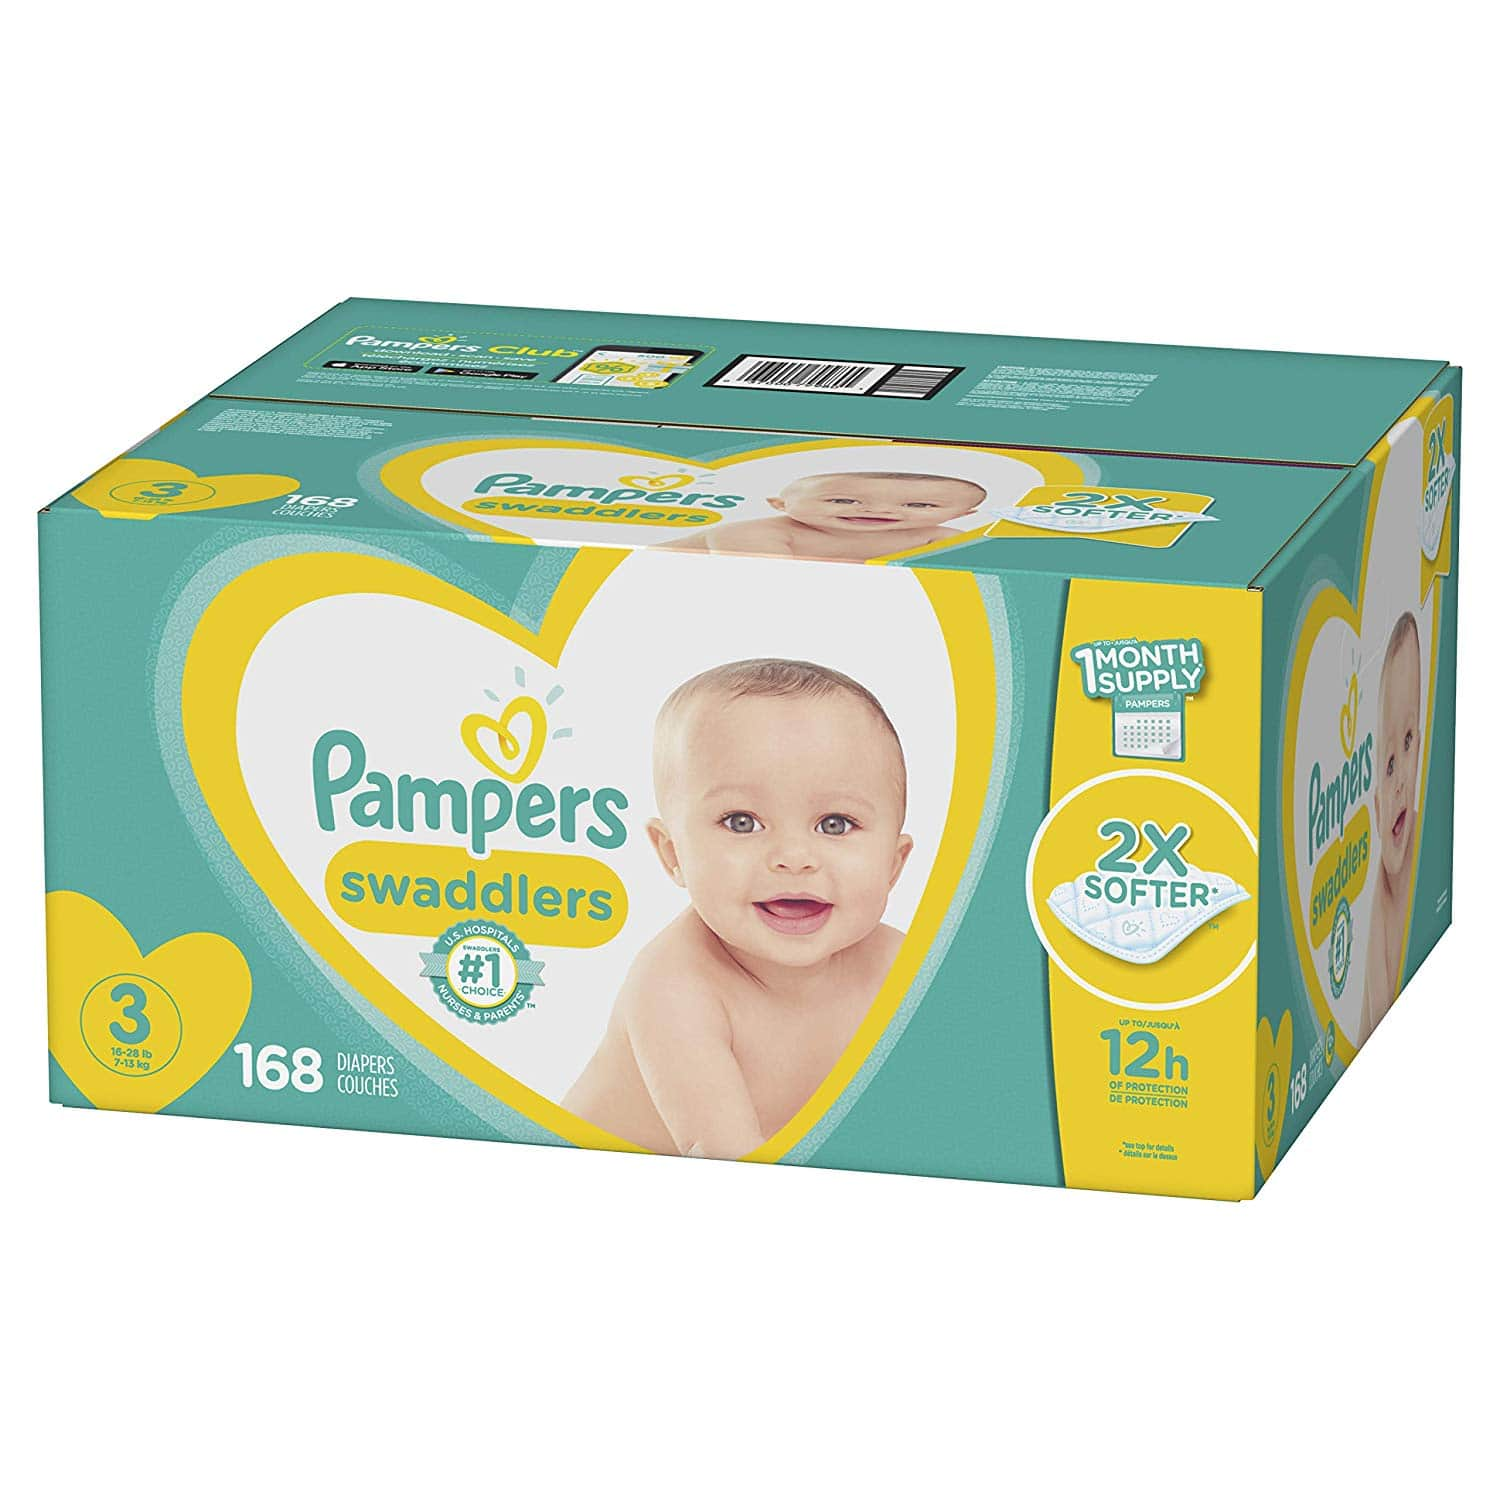 Amazon S&S Diapers Size 3, 168 Count - Pampers Swaddlers $25.70 YMMV